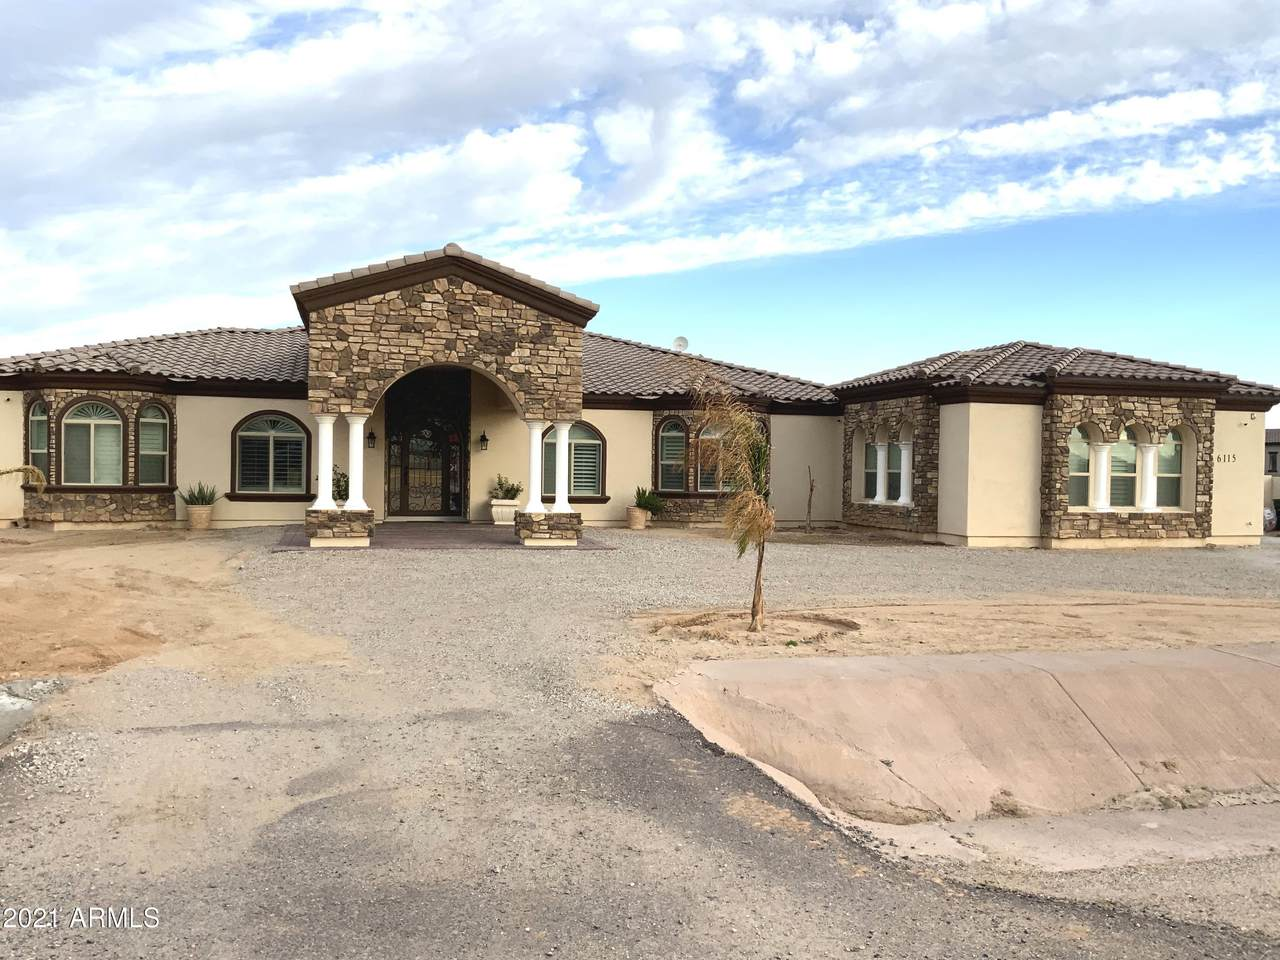 6115 175TH Avenue - Photo 1